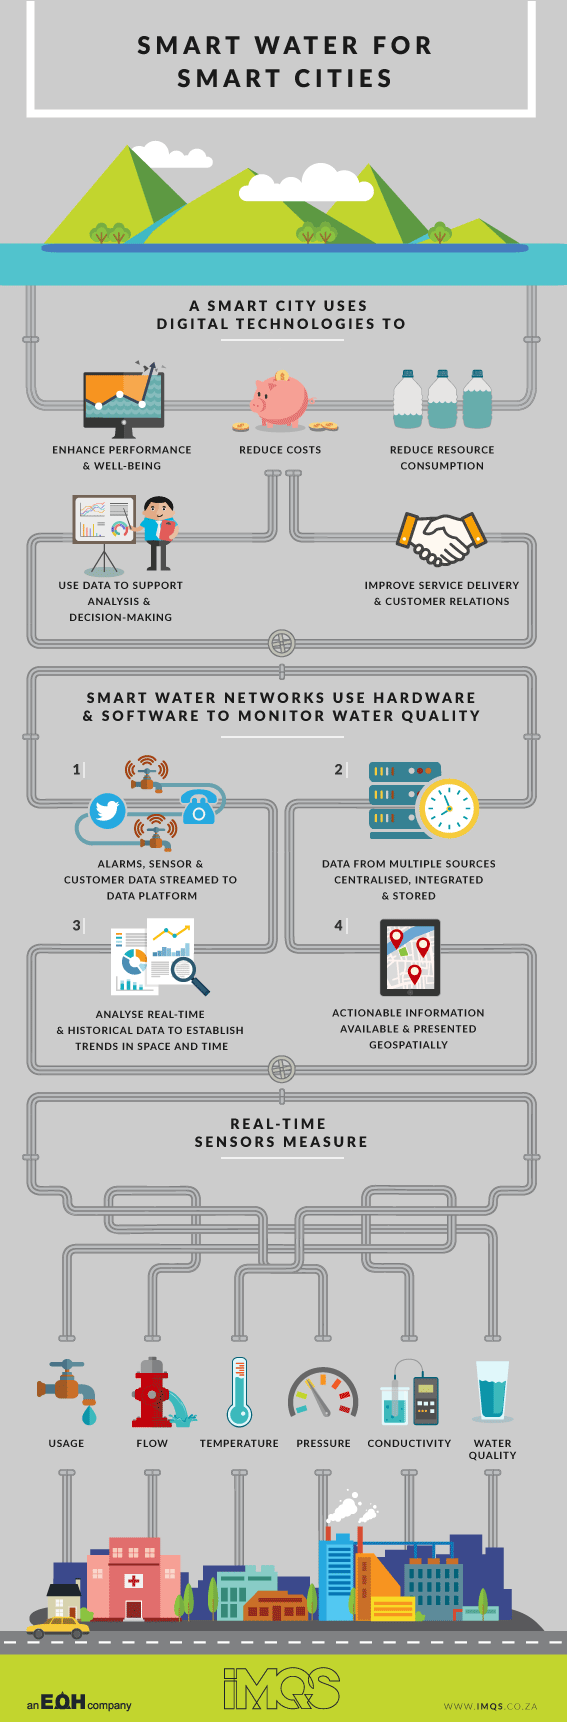 IMQS_Smart-Water-for-Smart-Cities